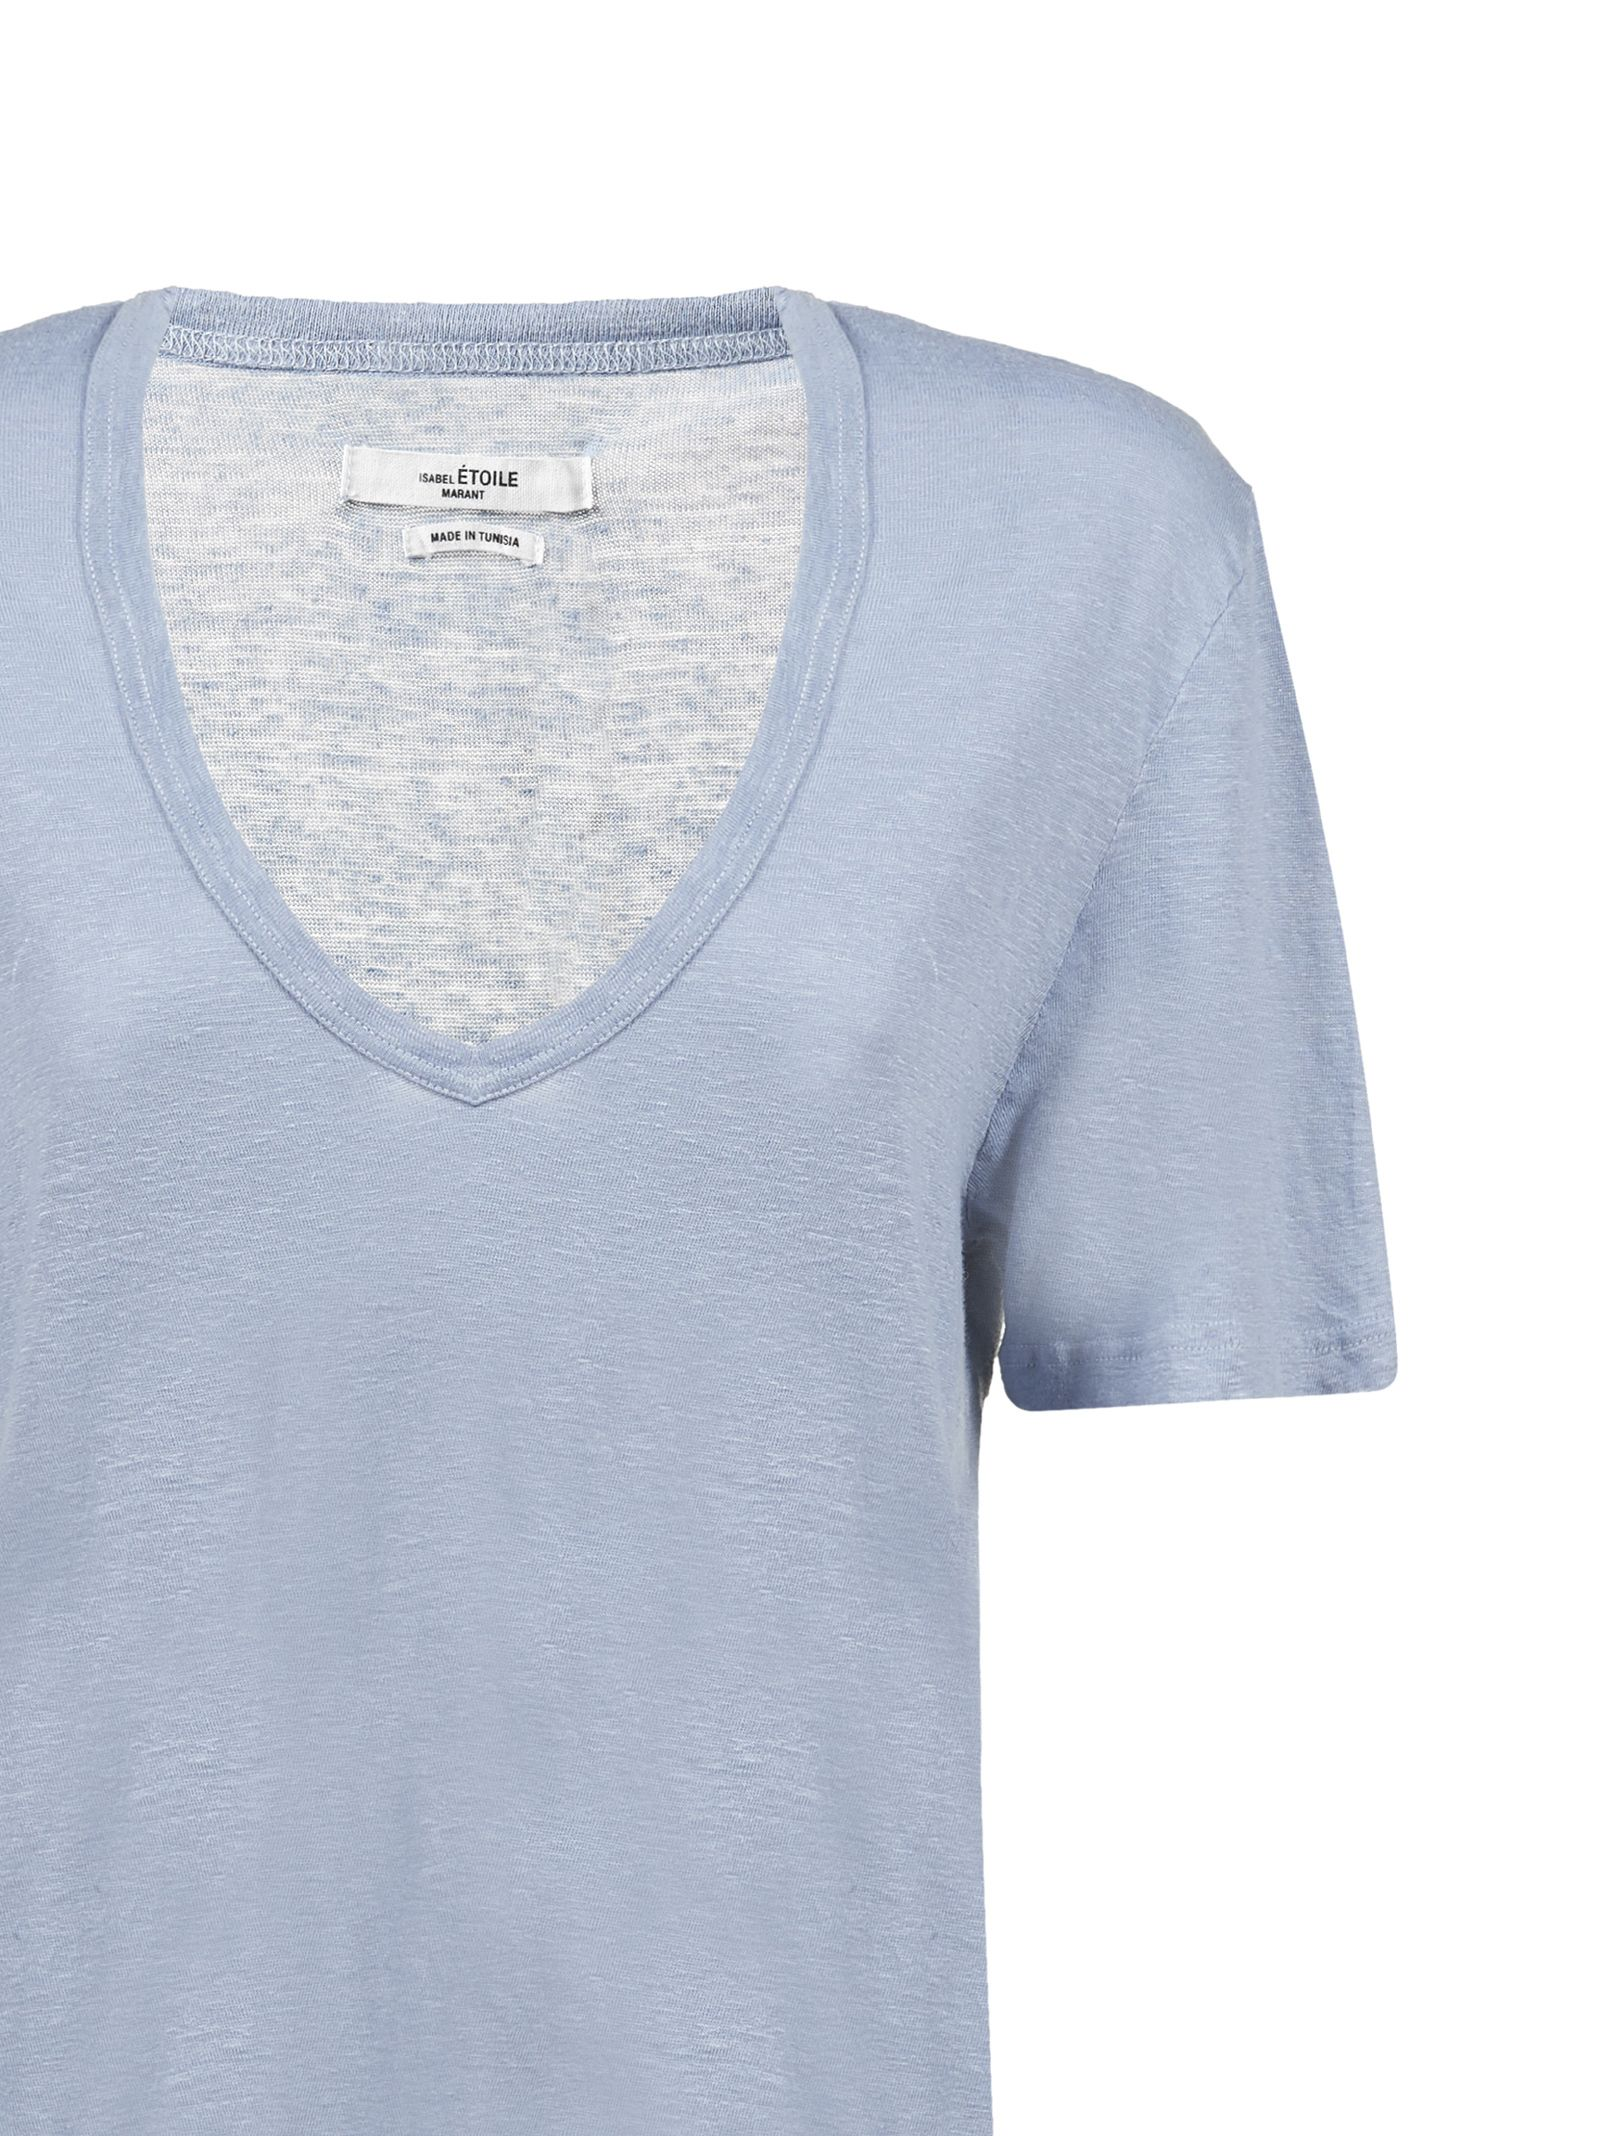 dae9447d Shop Italist T-shirts and Vests on sale at the Marie Claire Edit